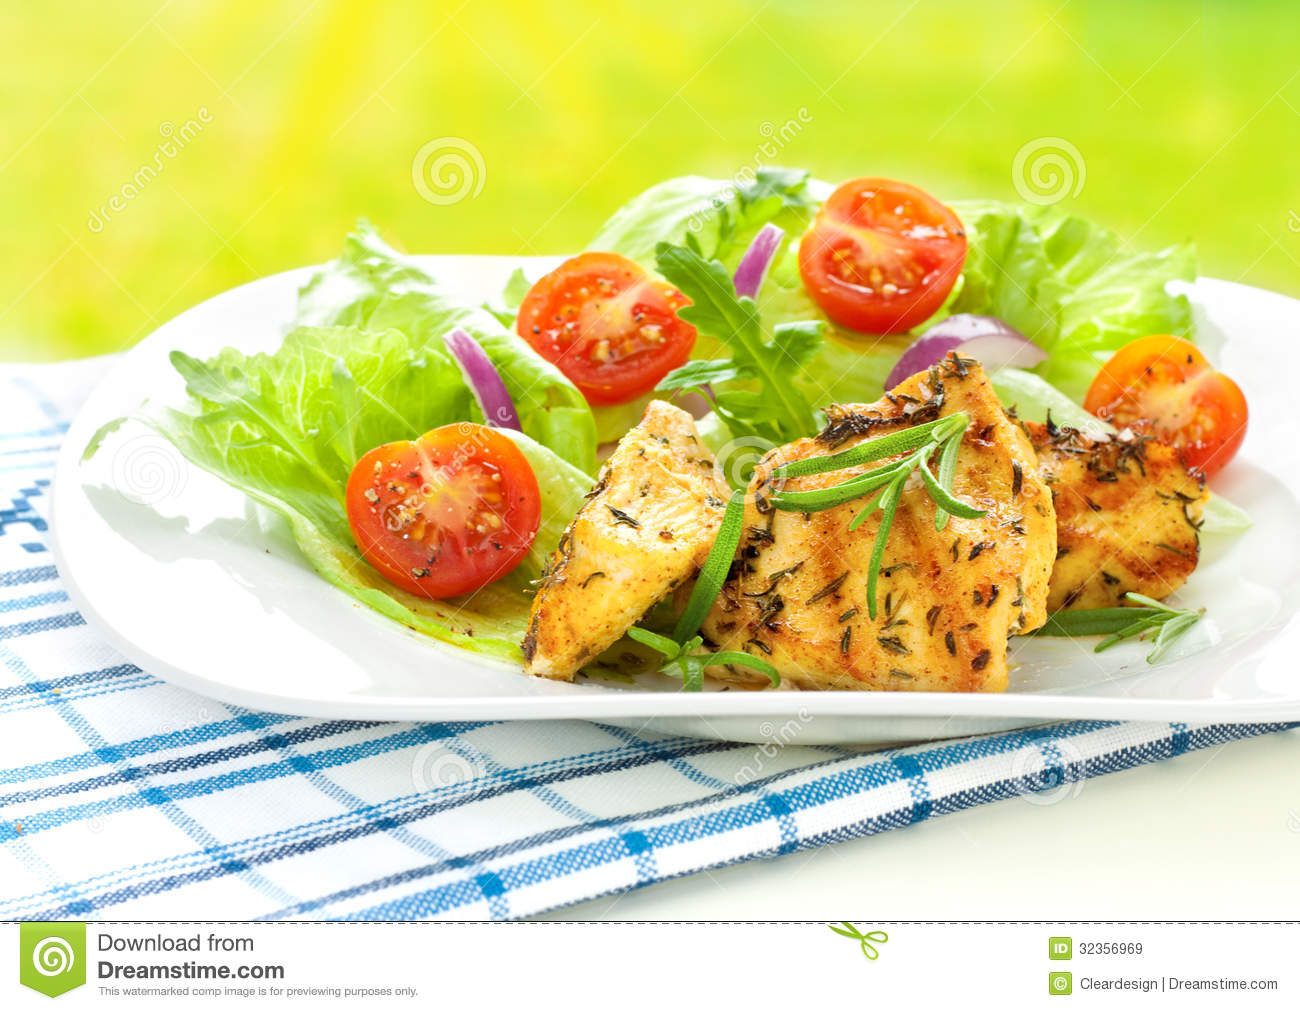 Grilled chicken breast fillet with fresh spring salad